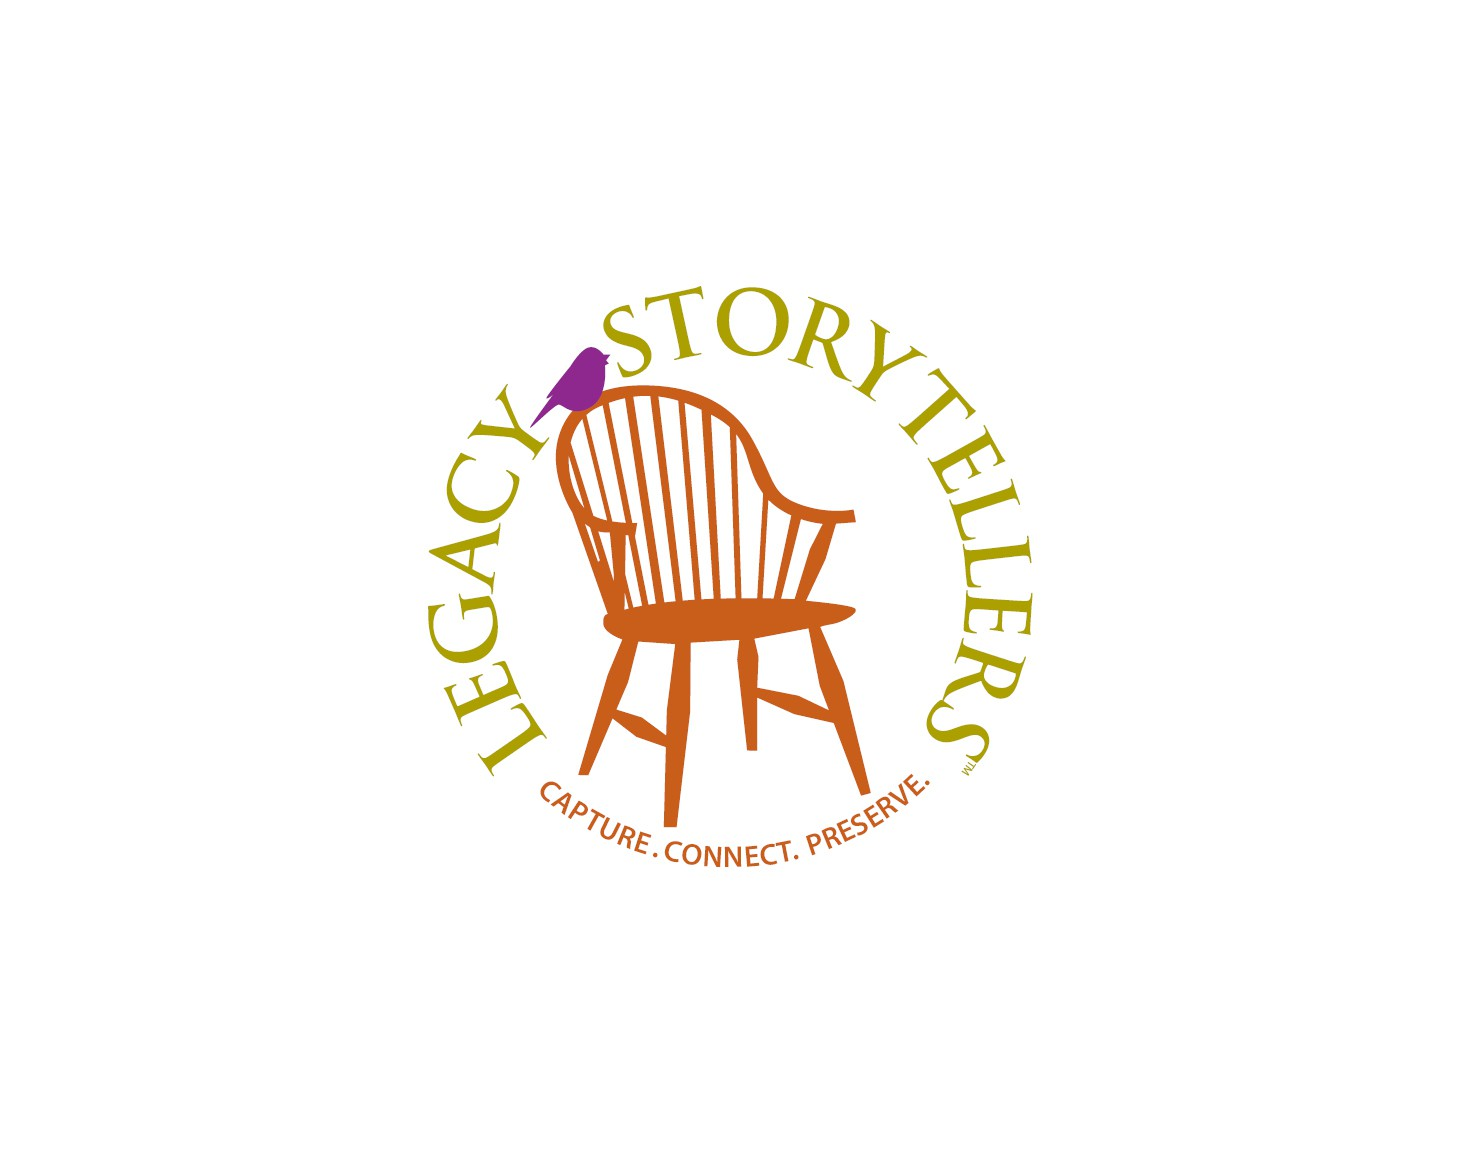 New logo wanted for LEGACY STORYTELLERS - SAVING LEGACIES 1 FAMILY AT A TIME